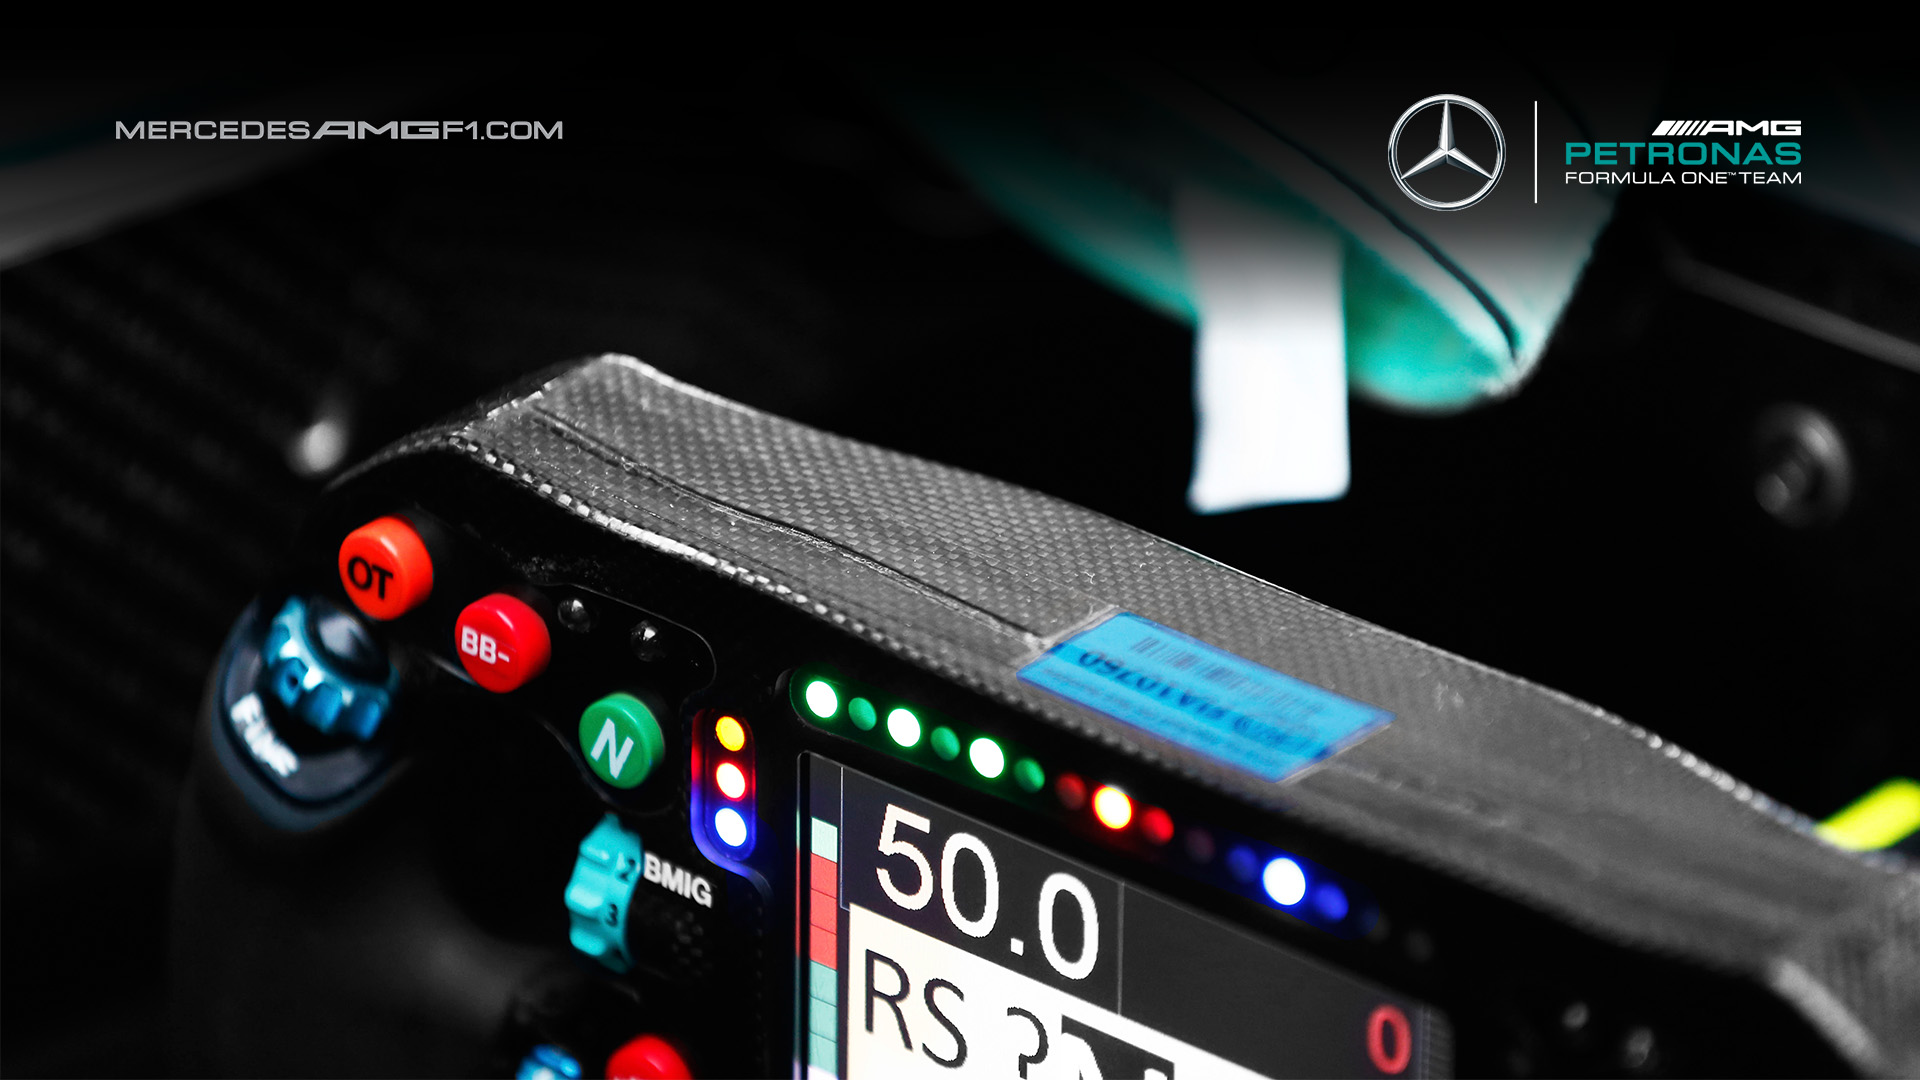 Mercedes amg f1 team wallpaper